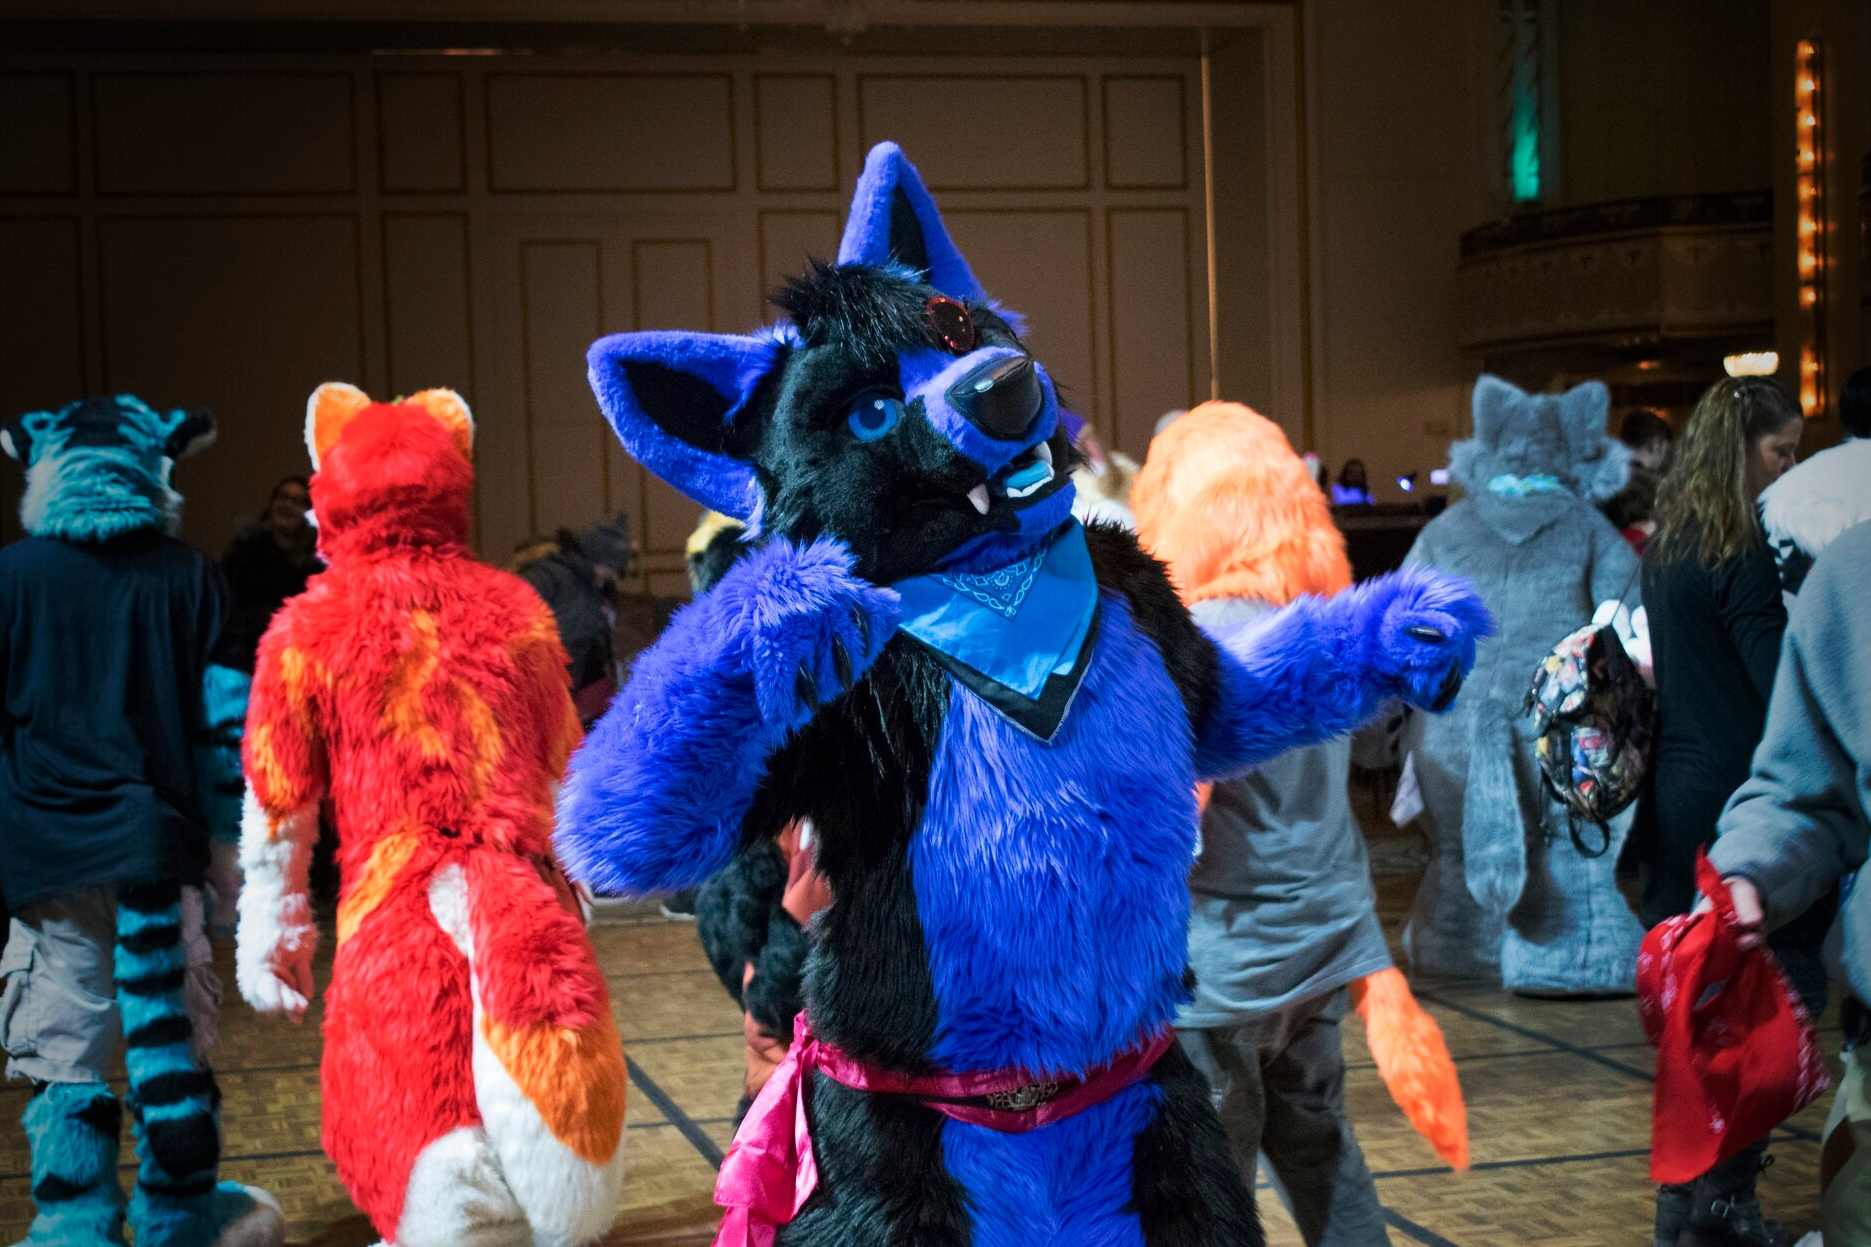 Boston's Annual Furry Convention - Every year, furries - fans of anthropomorphic characters - gather to have fun, share knowledge, and help local charities. We invite you to join us, come see what we're all about!Photo by Yeentography